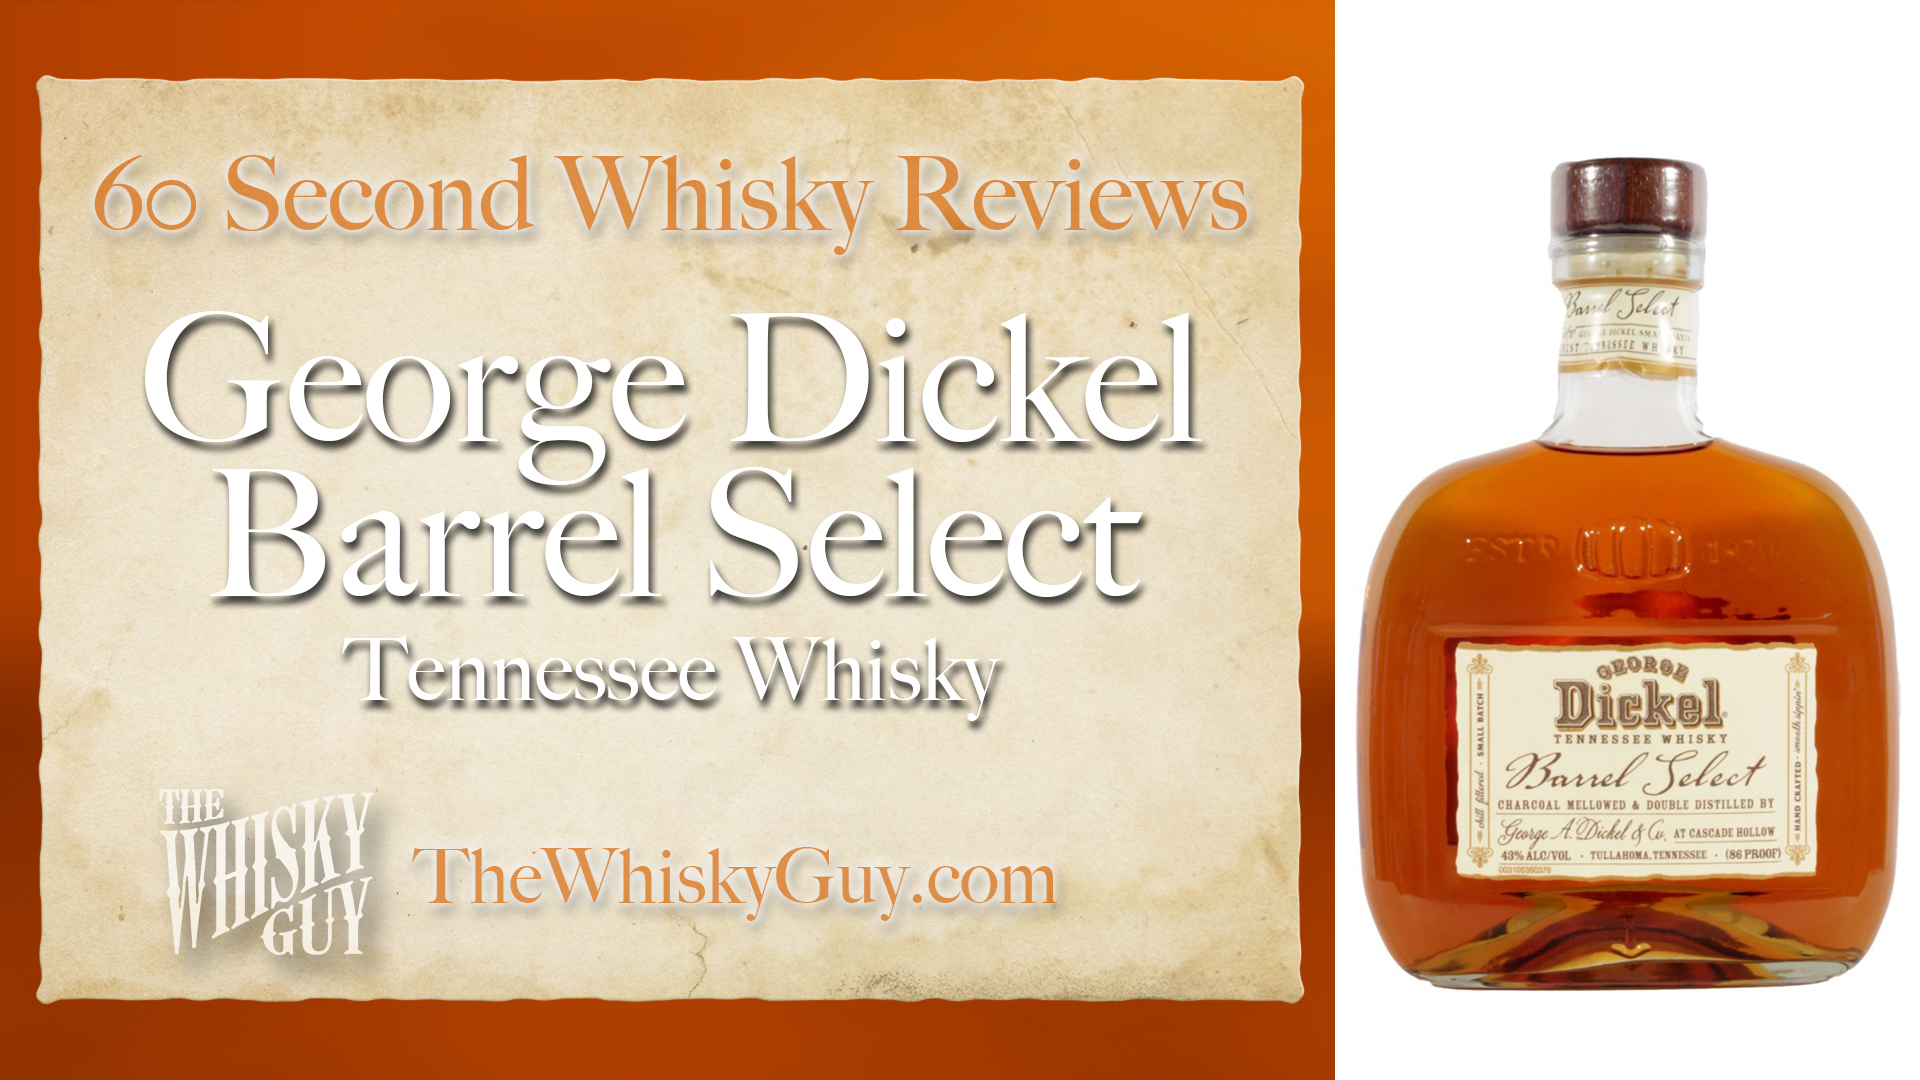 Does George Dickel Barrel Select Tennessee Whisky belong in your liquor cabinet? Is it worth the price at the bar? Give The Whisky Guy 60 seconds and find out! In just 60 seconds, The Whisky Guy reviews Irish Whiskey, Scotch Whisky, Single Malt, Canadian Whisky, Bourbon Whiskey, Japanese Whisky and other whiskies from around the world. Find more at TheWhiskyGuy.com. All original content © Ari Shapiro - TheWhiskyGuy.com